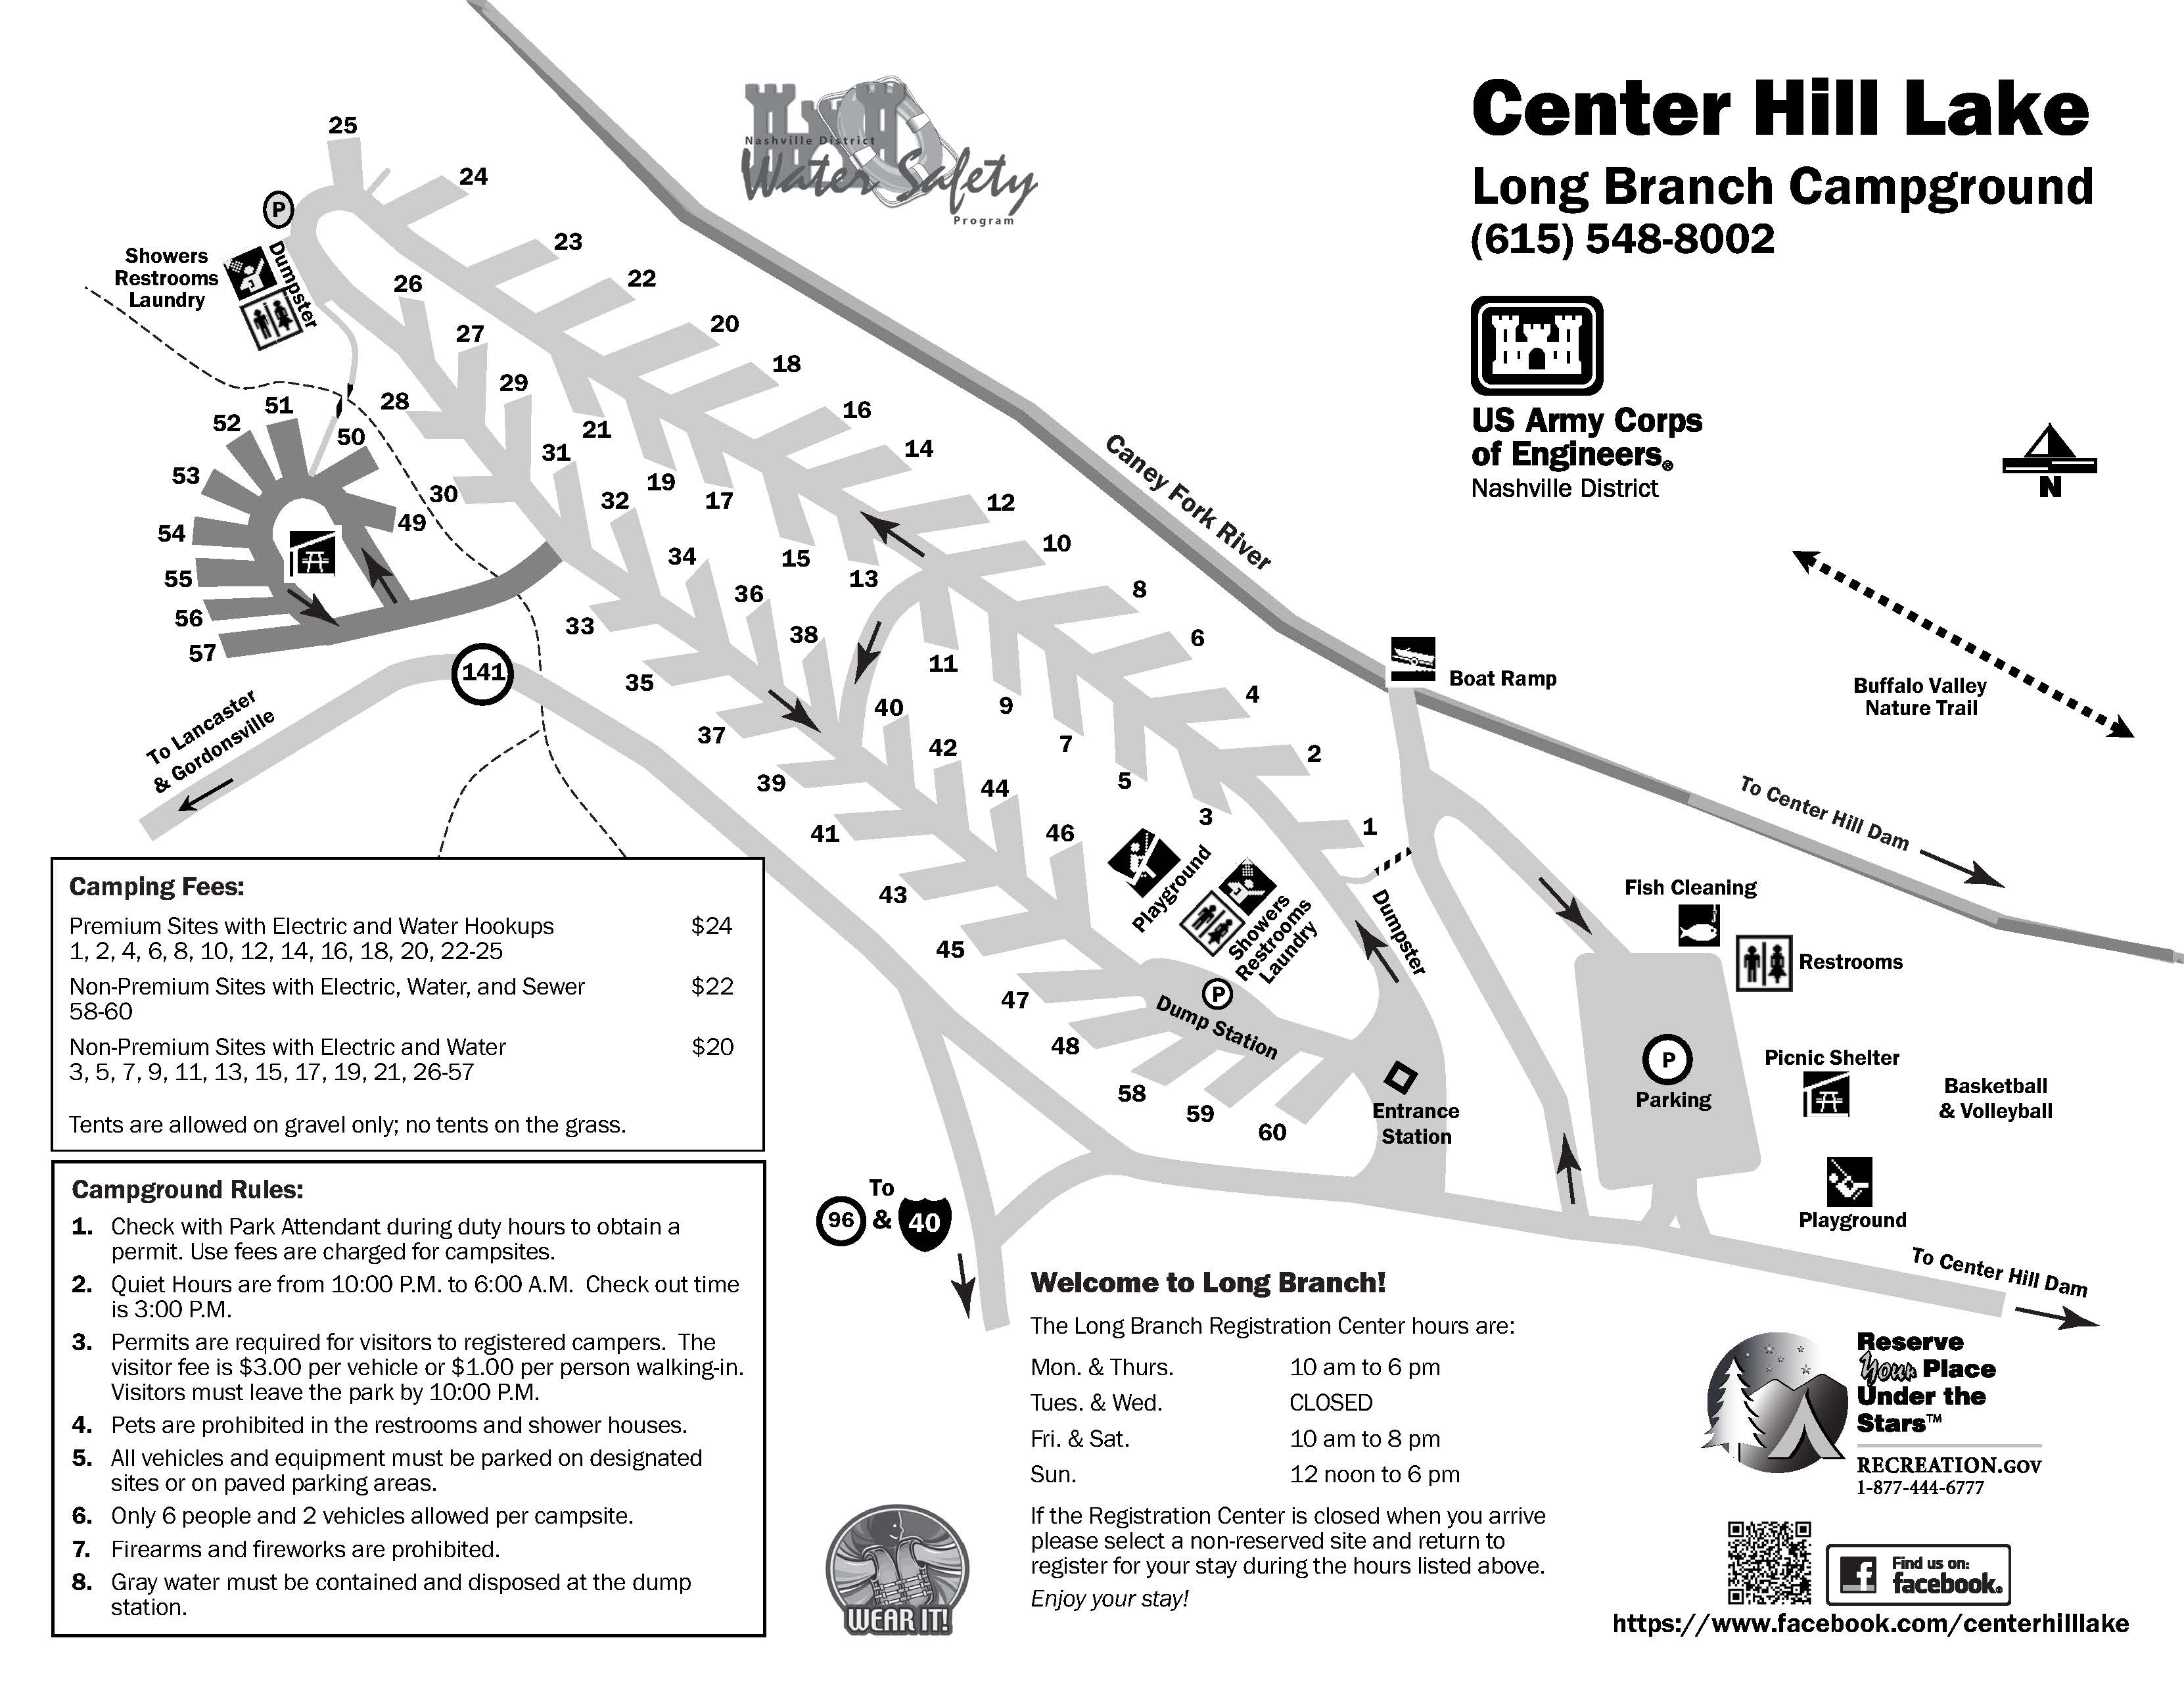 Long Branch Campground map at Center Hill Lake